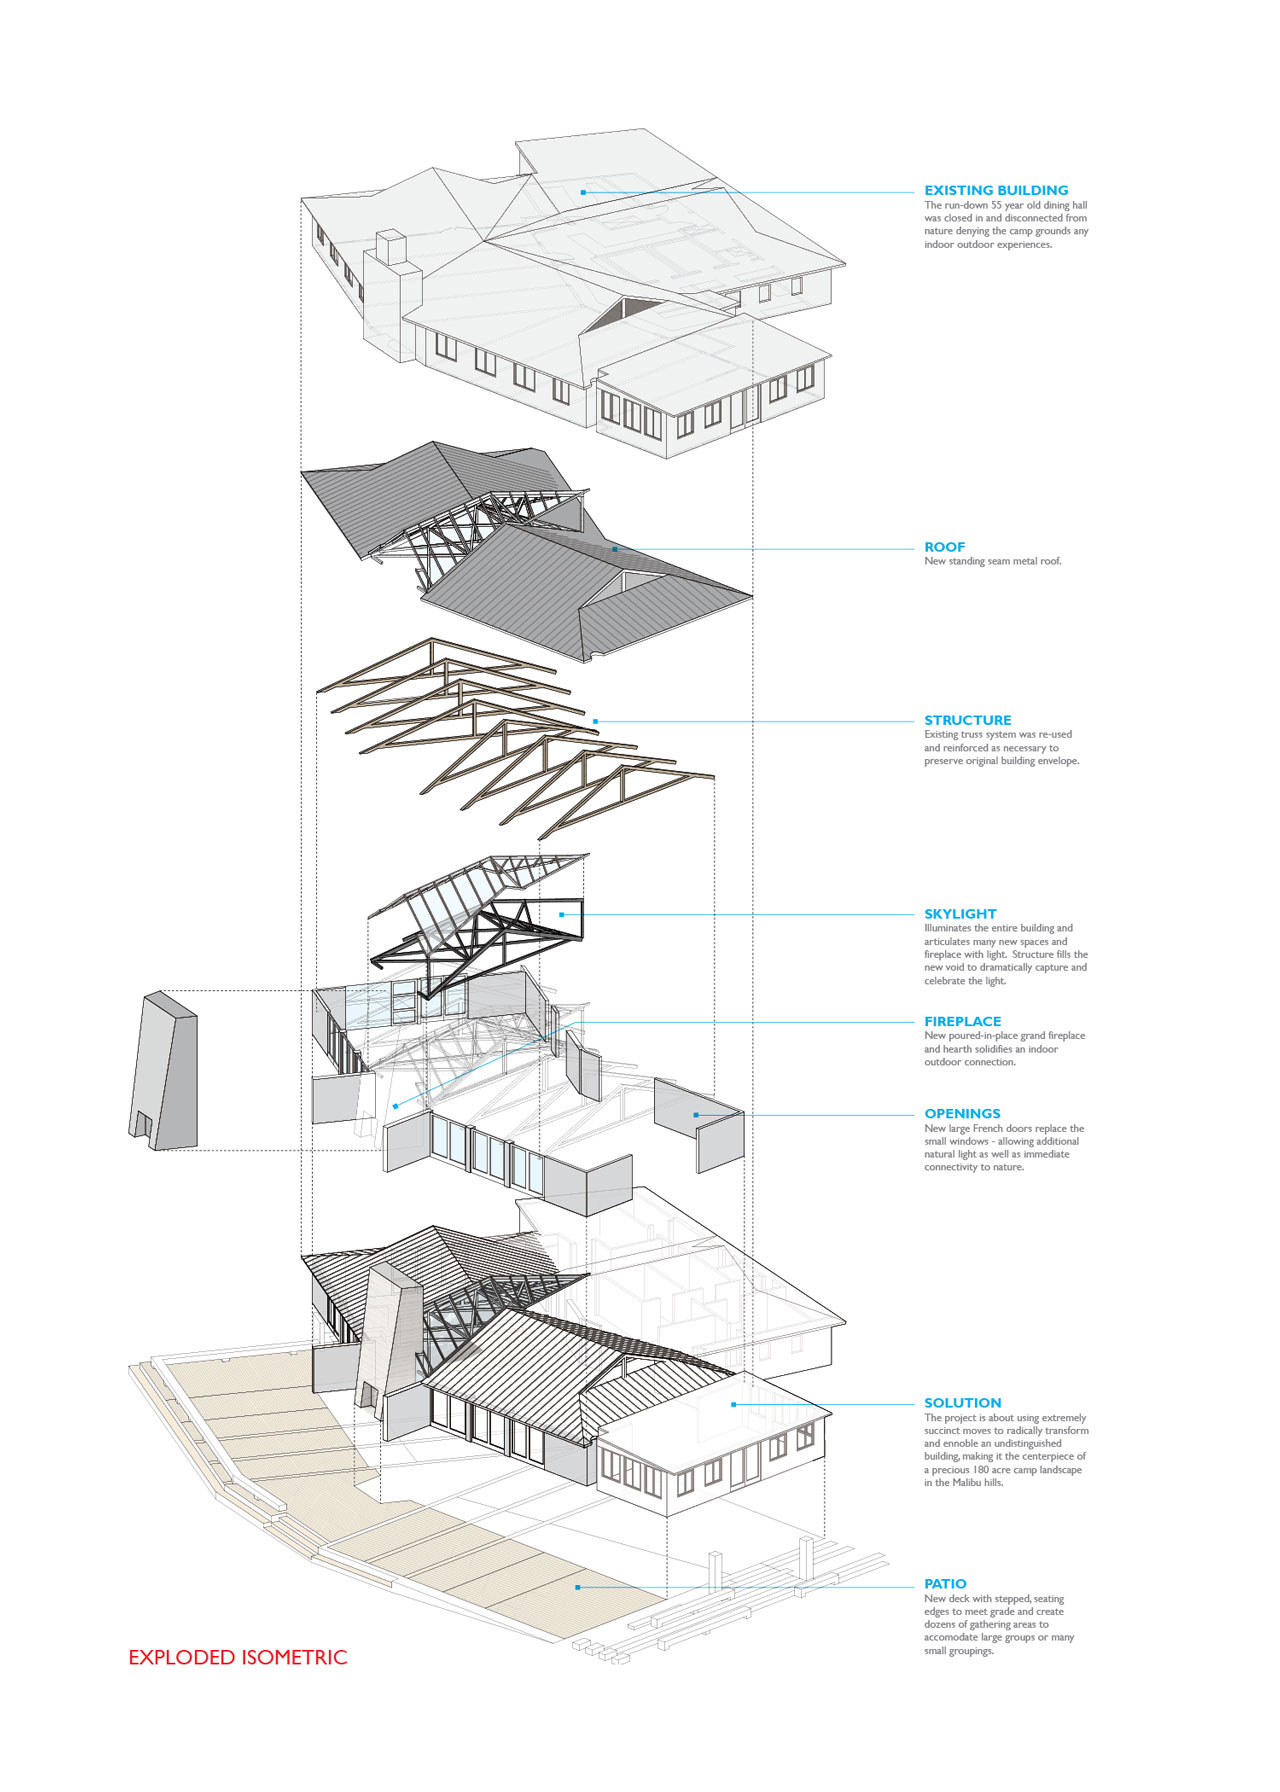 exploded axon diagram subaru outback wiring shalom institute dining hall lehrer architects